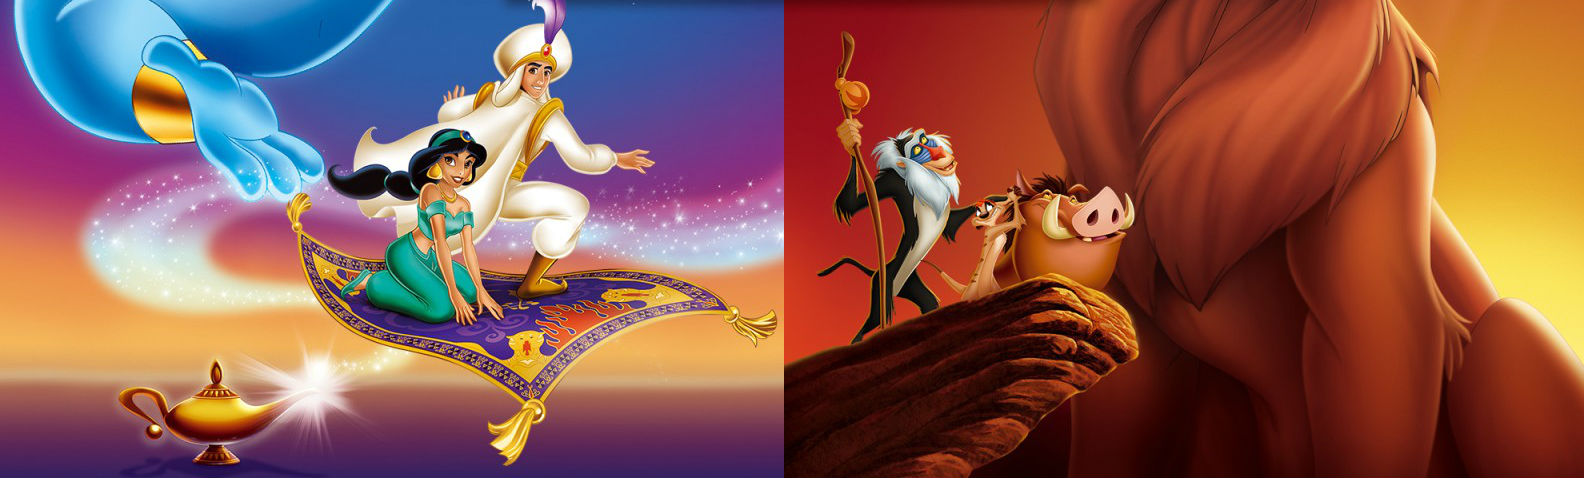 Disney Classic Games: Aladdin and The Lion King is a fantastic collection of a few very old games screenshot